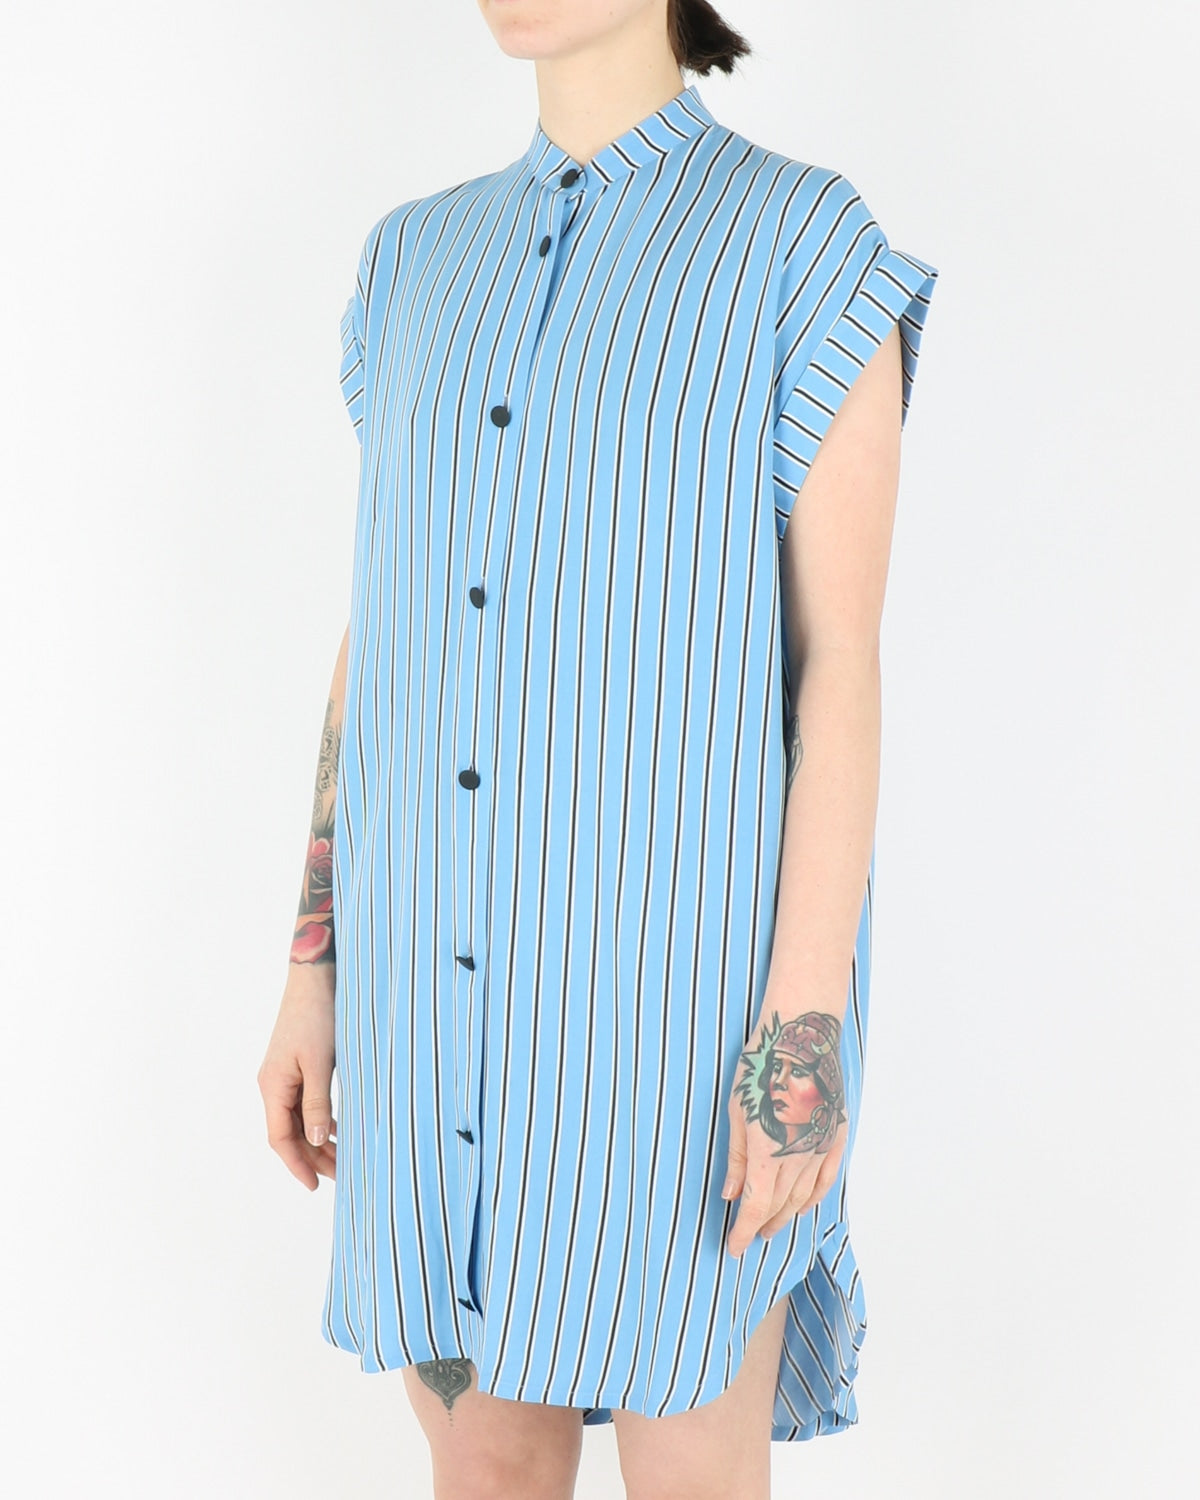 libertine libertine_exist dress_colonial blue stripe_view_2_3